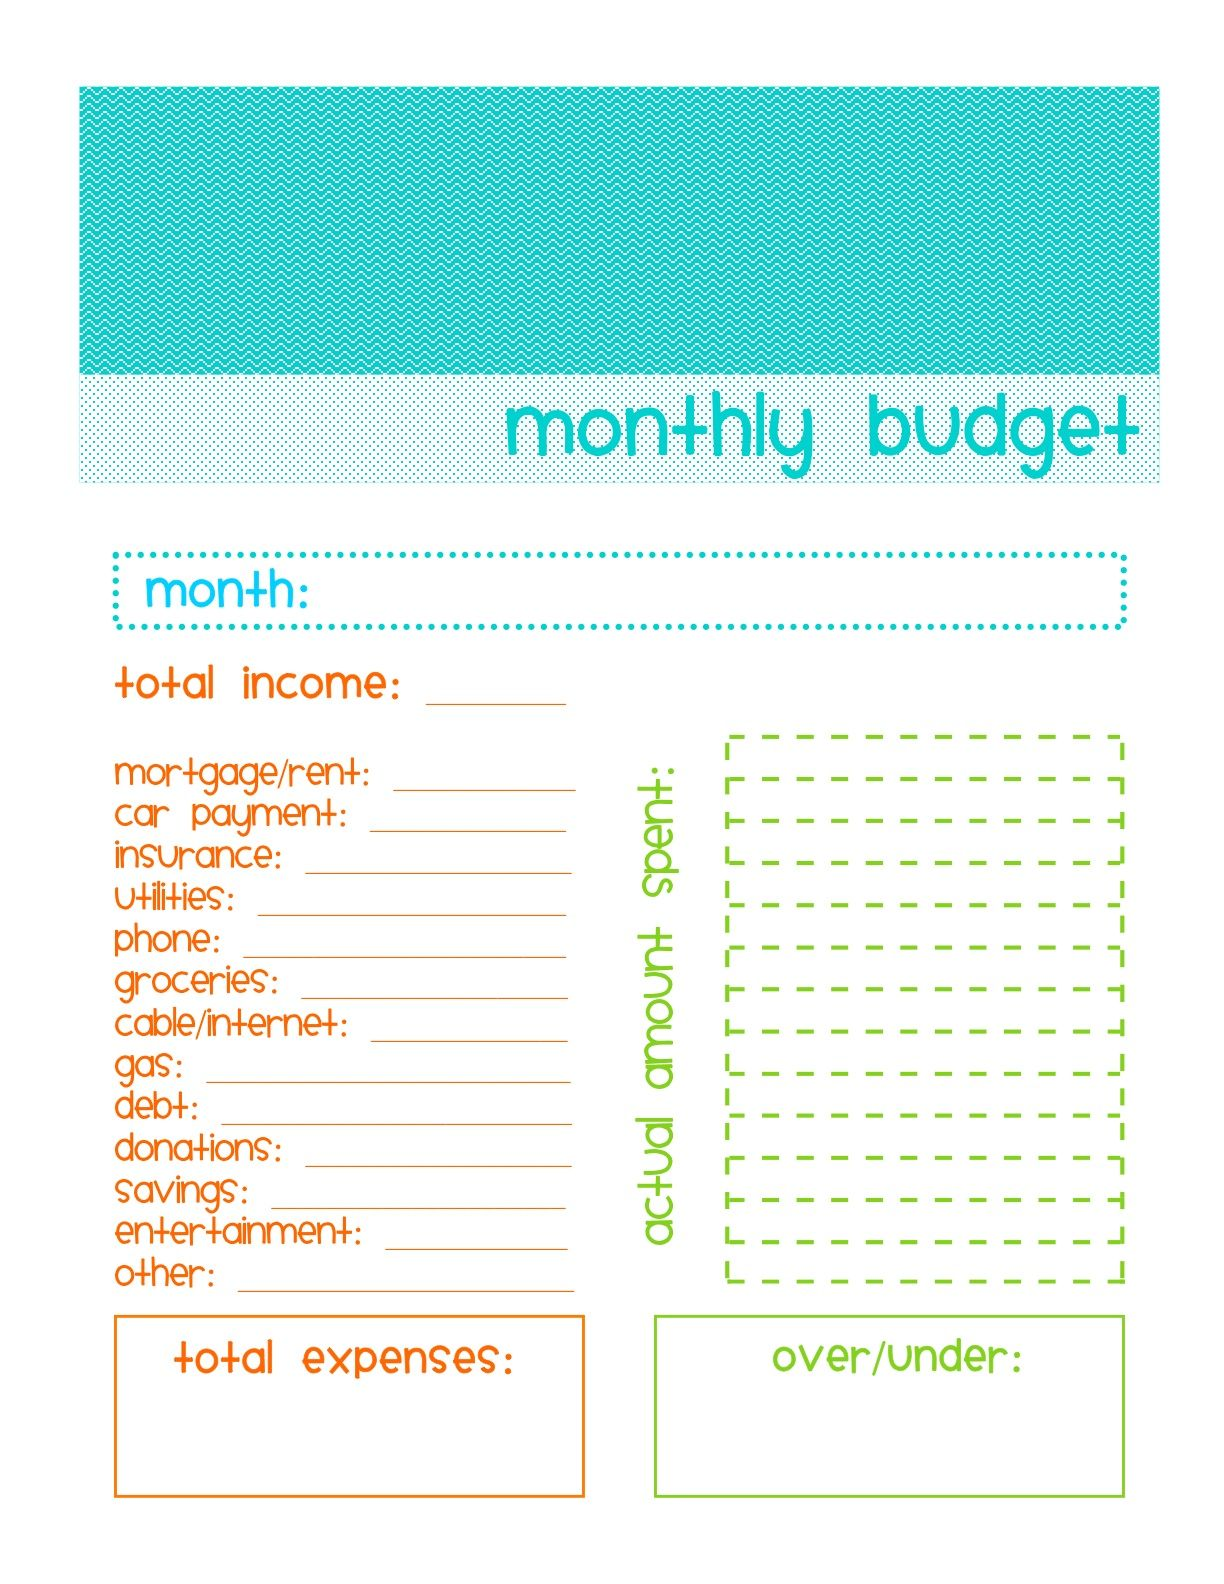 Printables Printable Monthly Budget Worksheet 1000 images about organization on pinterest simple budget template binder and finance